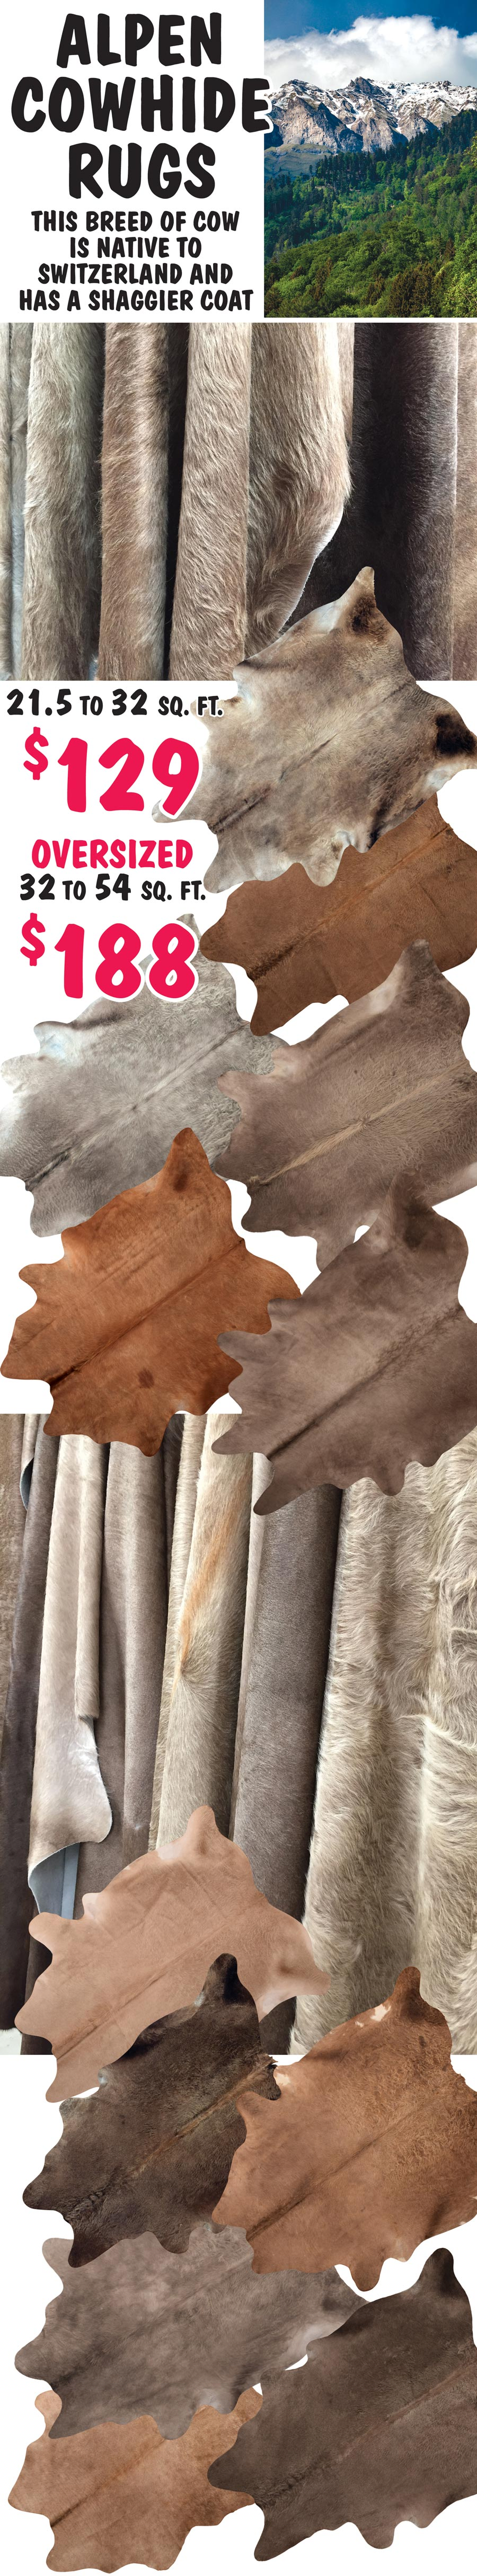 Alpen Shaggy Cowhide Rugs $129 to $188